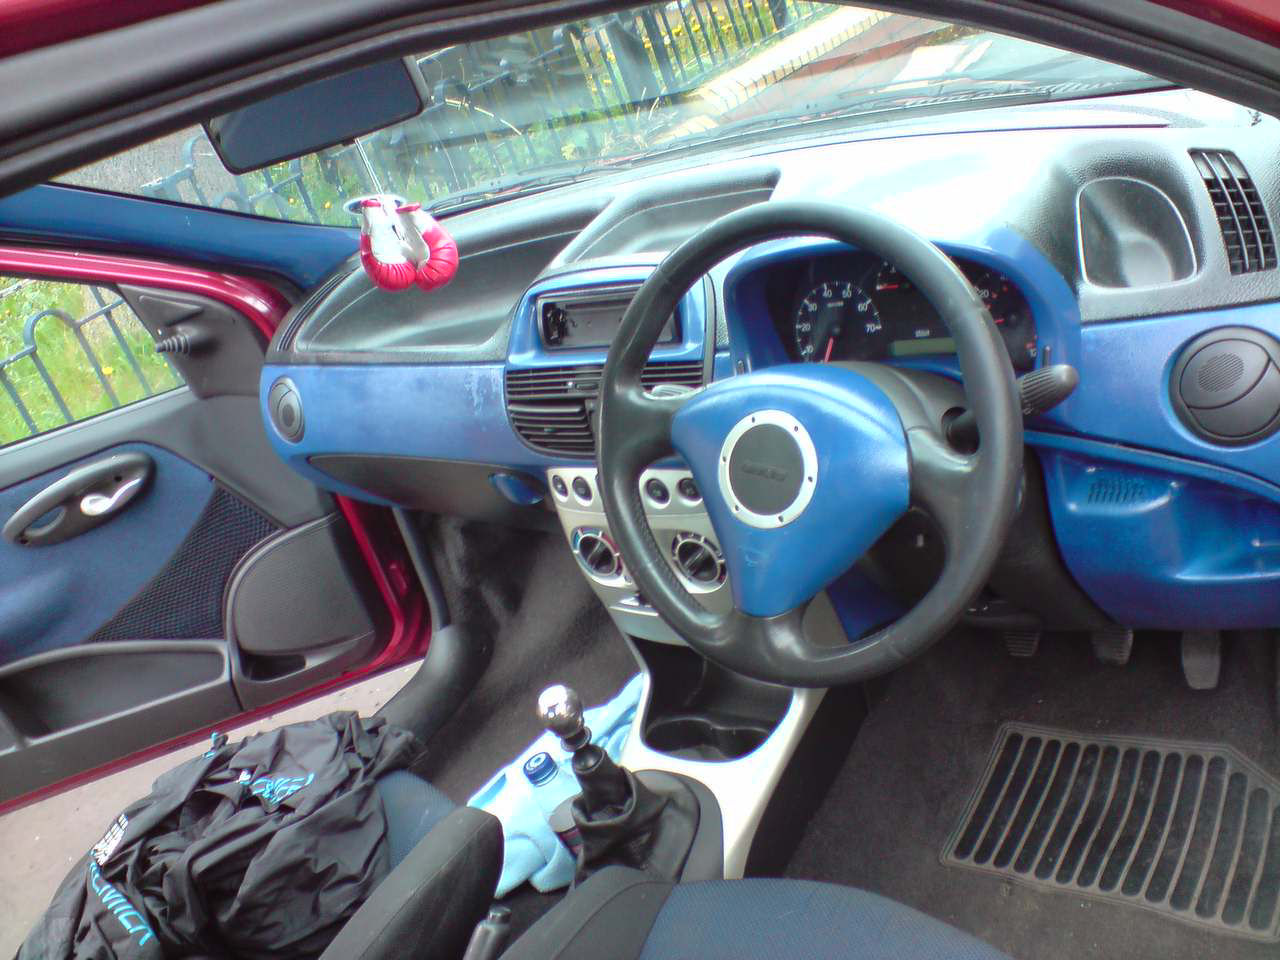 Punto Mk2 2b Out With The Old In New My Mk2a Fiat Grande Fuse Box Glove Compartment One Has Shortend So Went To A Motor Factors Near Mine And Payed 598 For 2 Big Fuses Problem Solved Now Car Is All Put Together Heres Pics